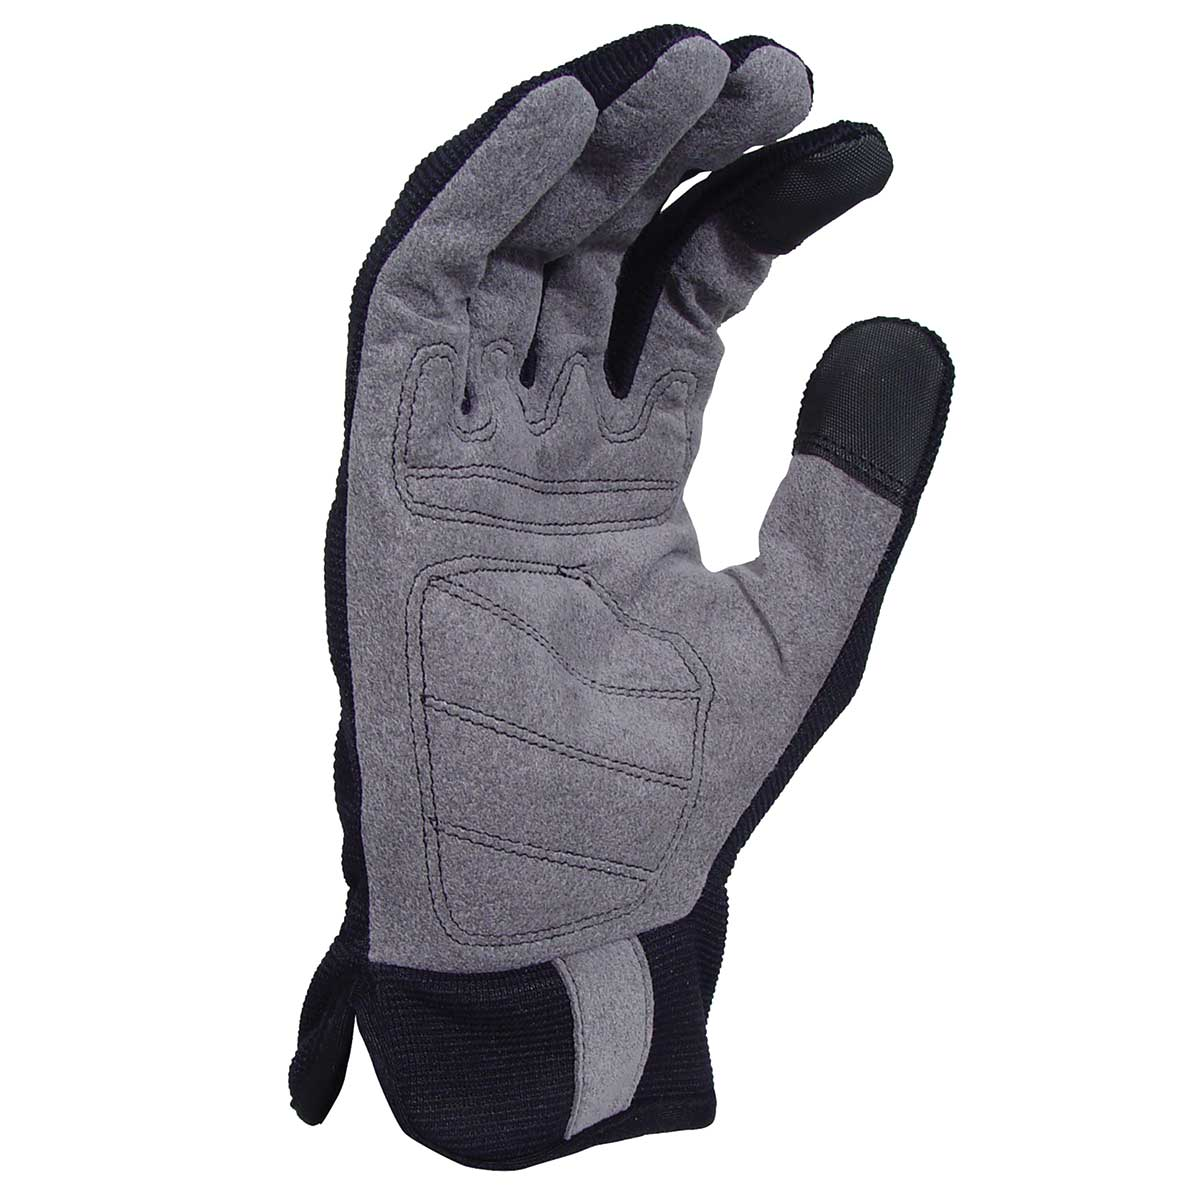 DEWALT Rapid Fit Slip-On Glove